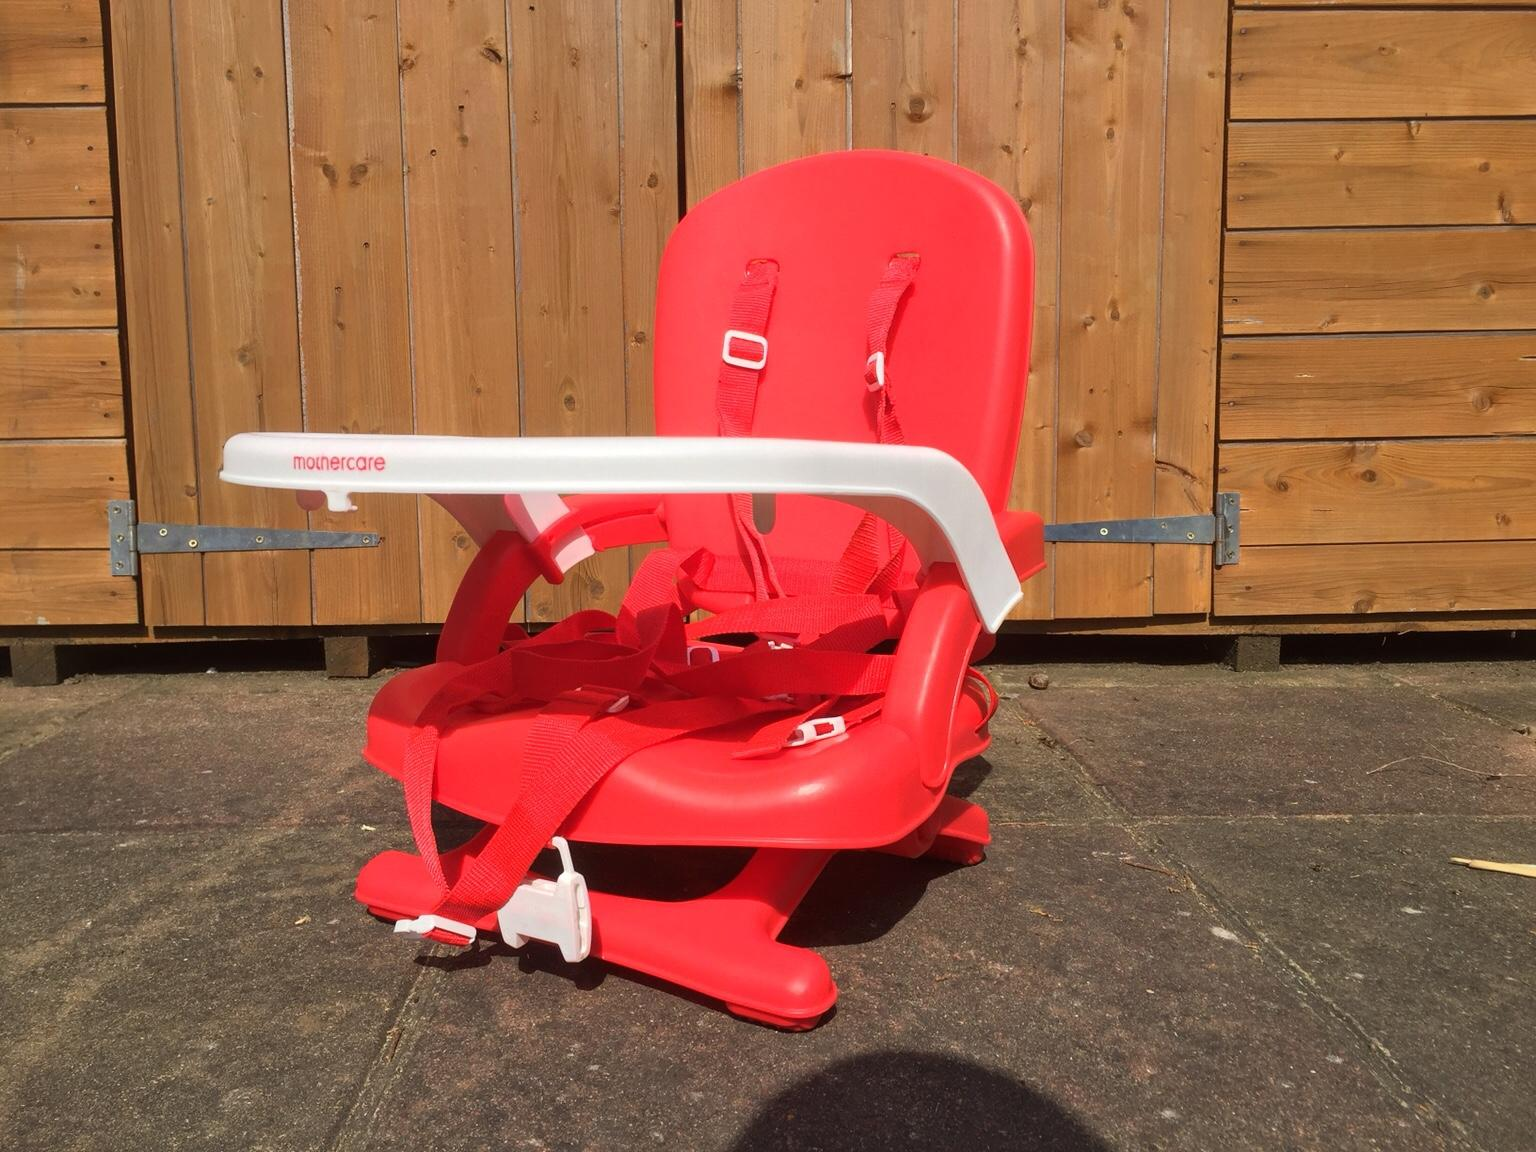 Astounding Travel Baby High Chair Andrewgaddart Wooden Chair Designs For Living Room Andrewgaddartcom